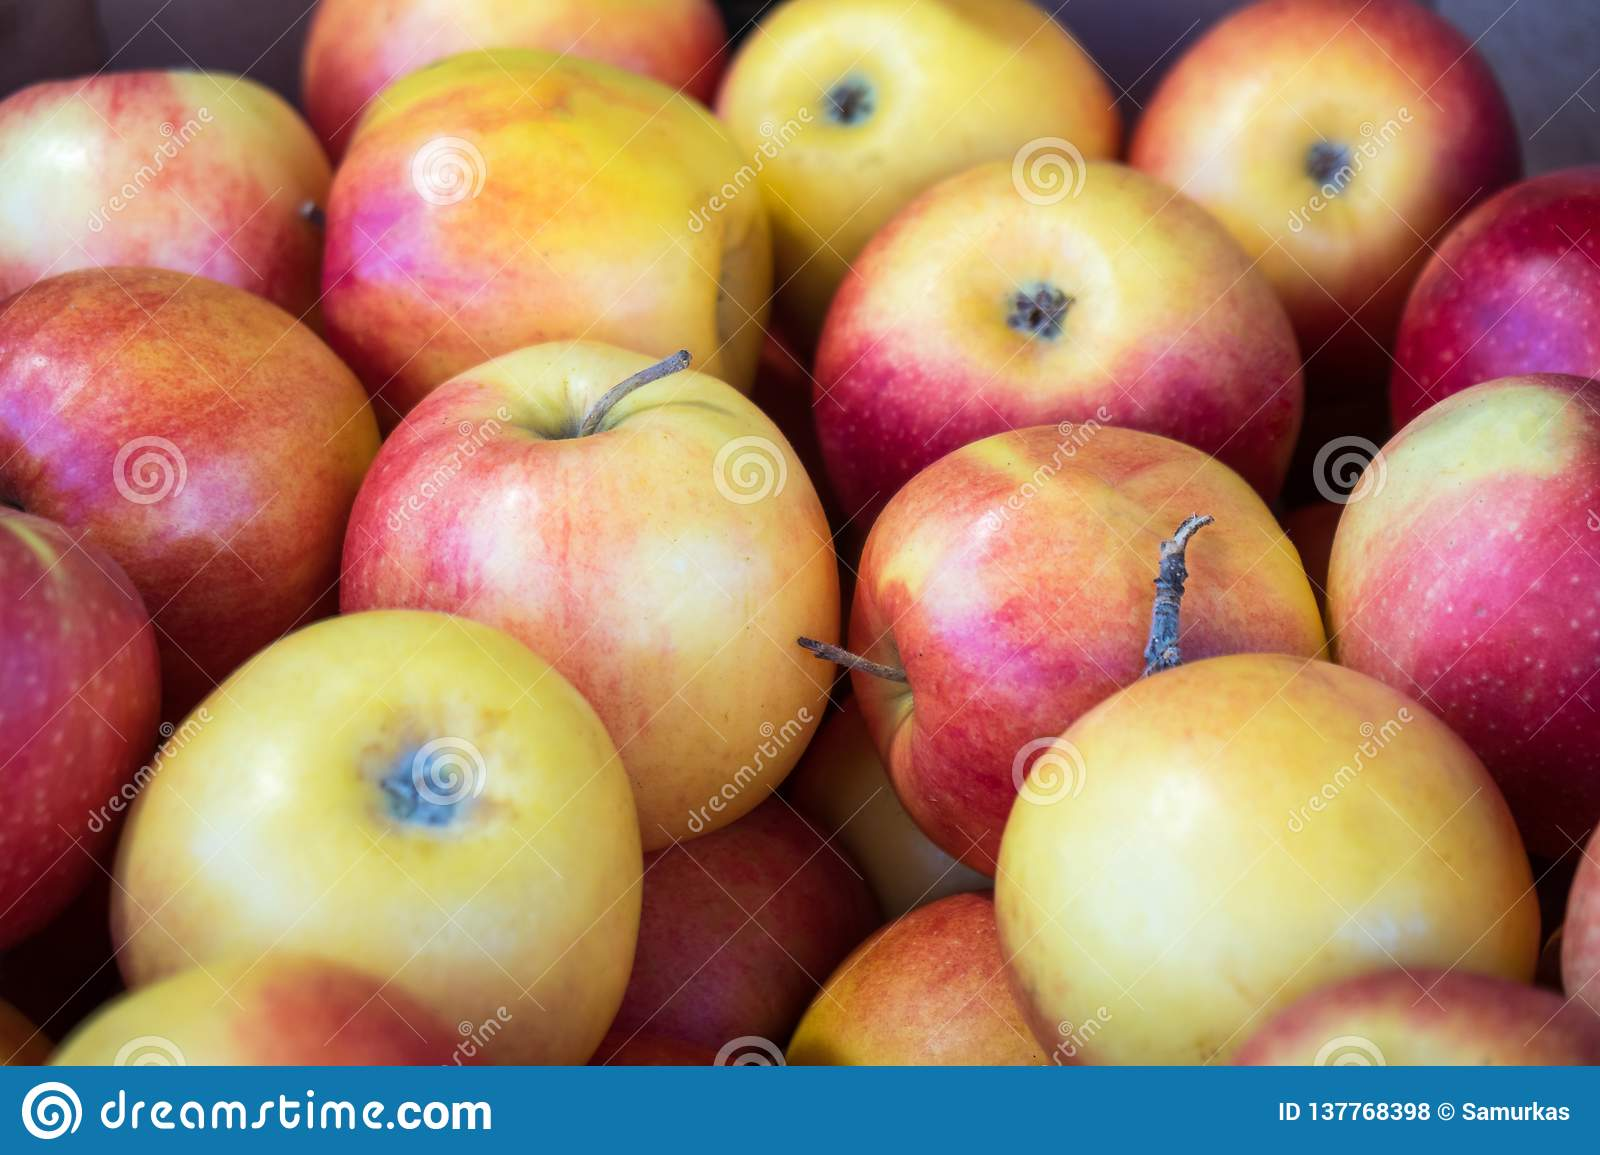 Fresh red apples in a market, healthy food